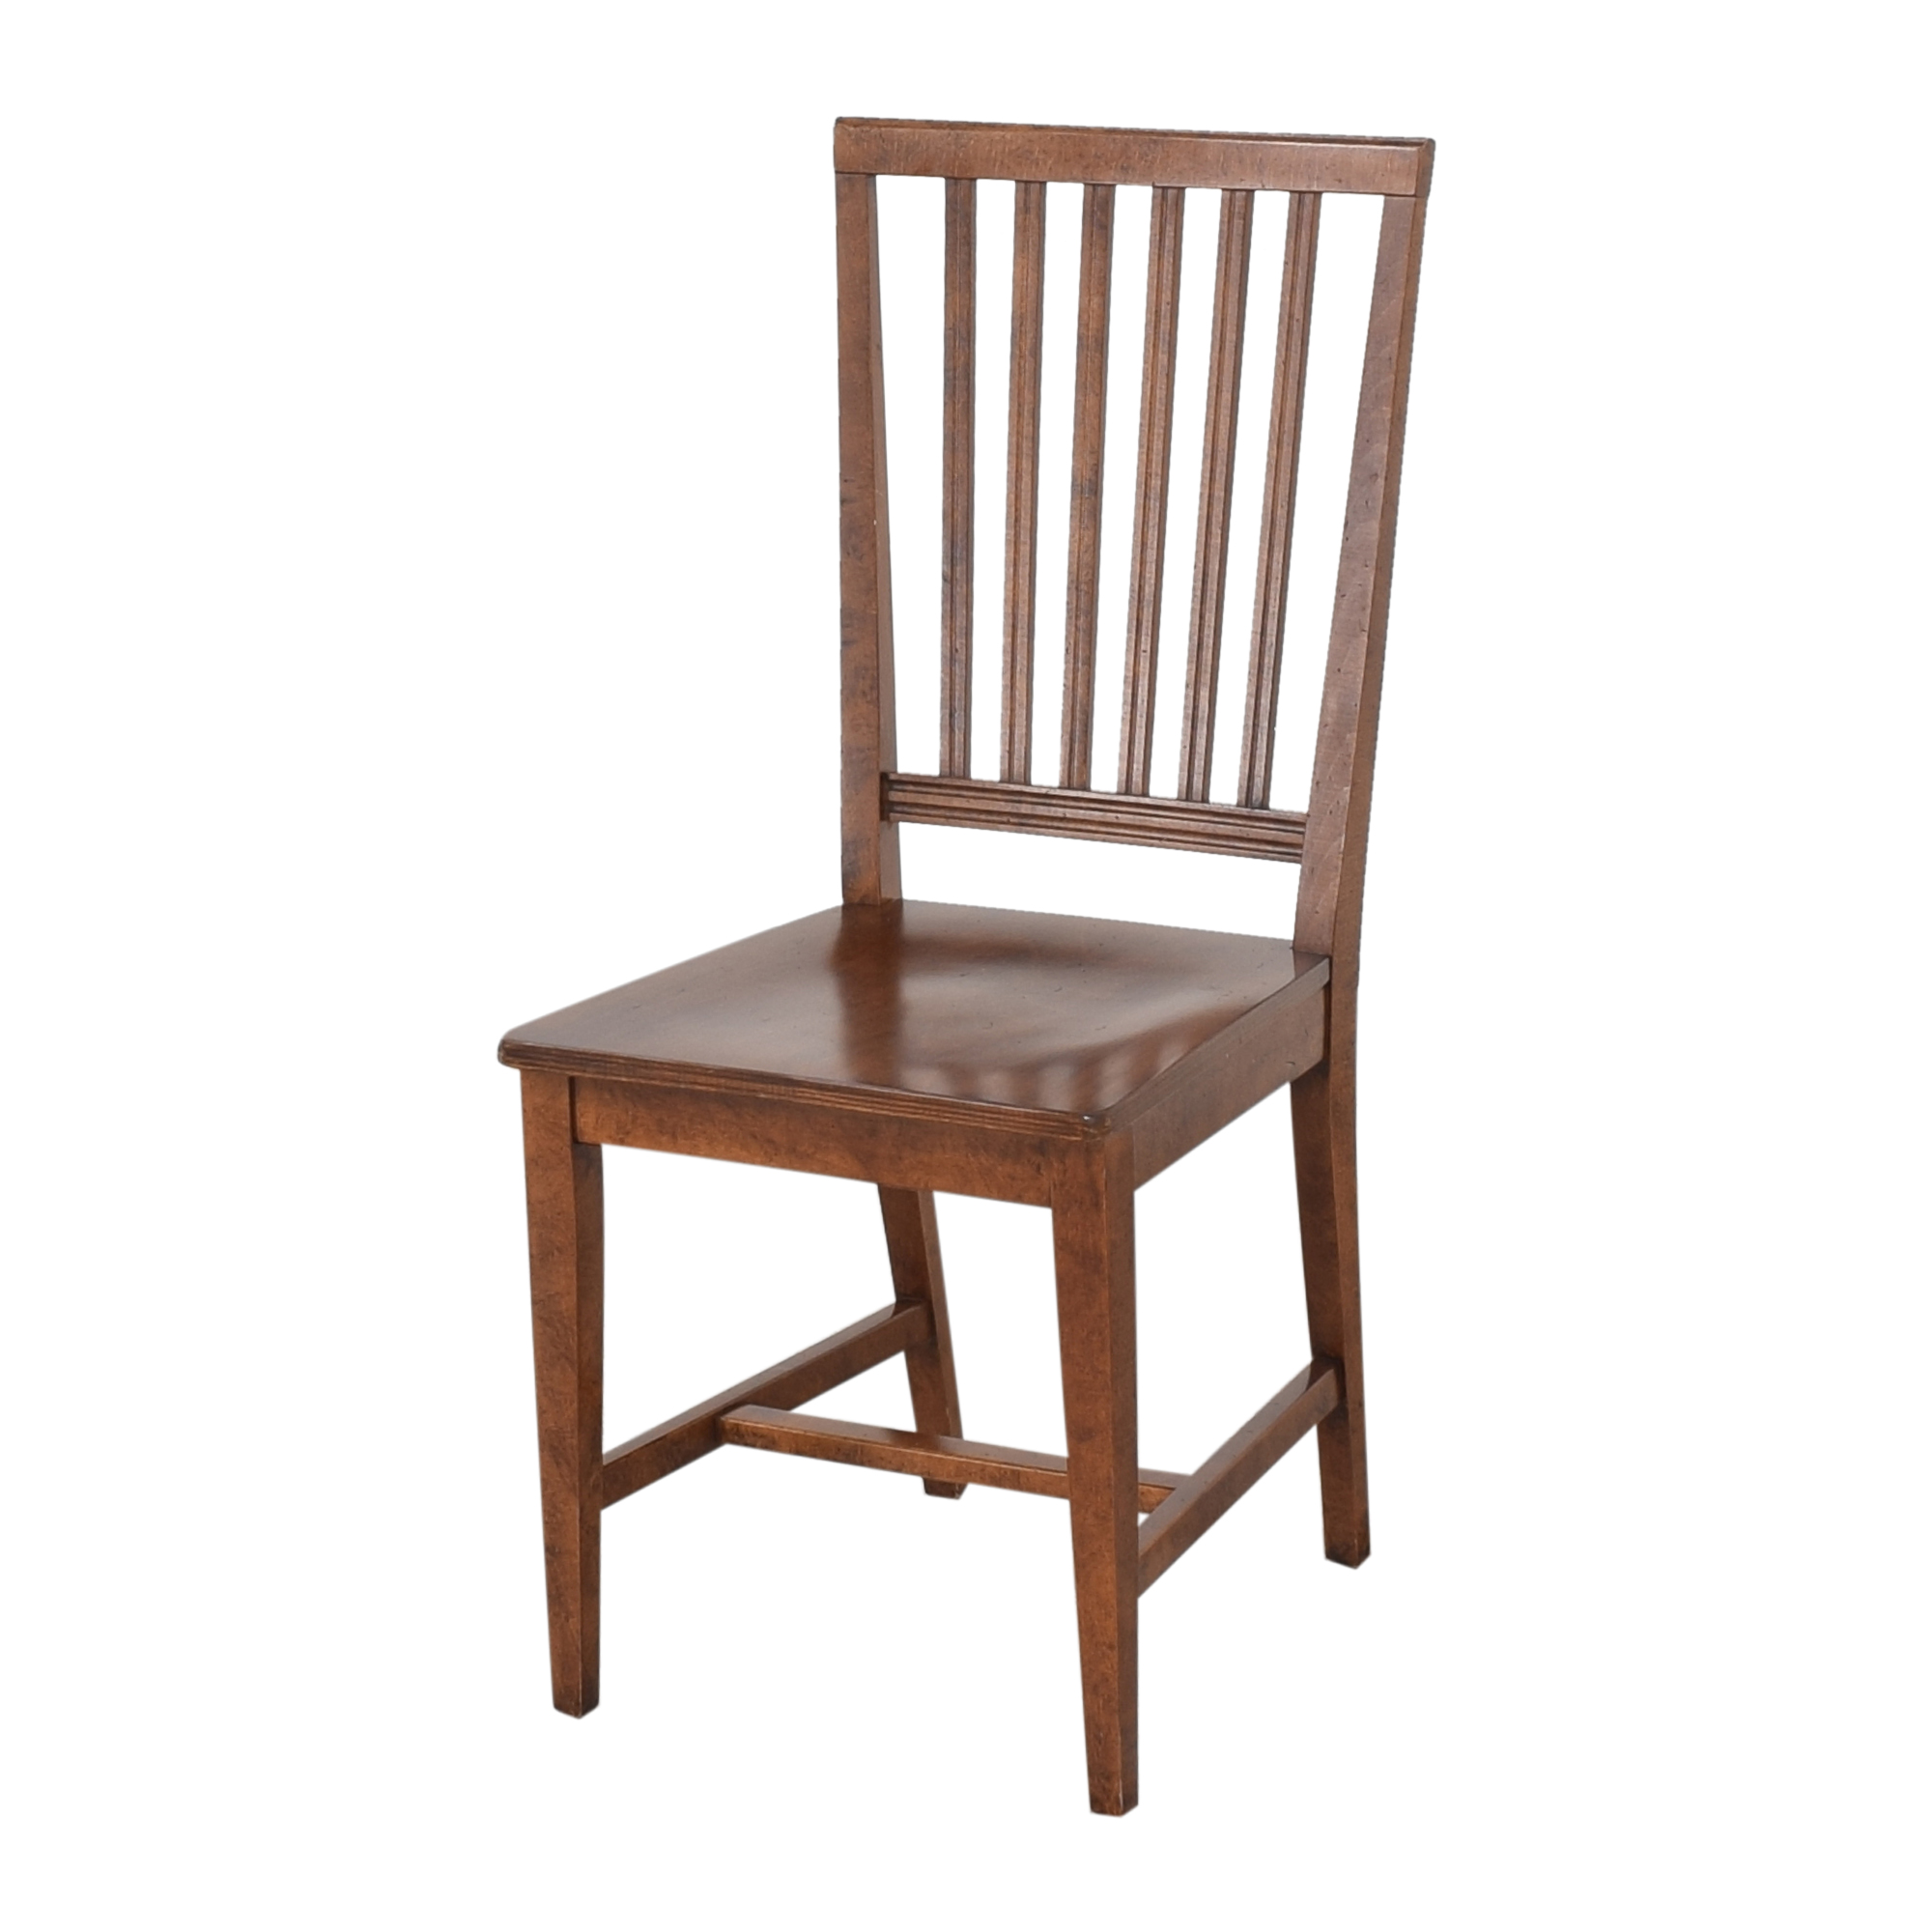 Crate & Barrel Crate & Barrel Village Nero Noche Dining Chairs coupon